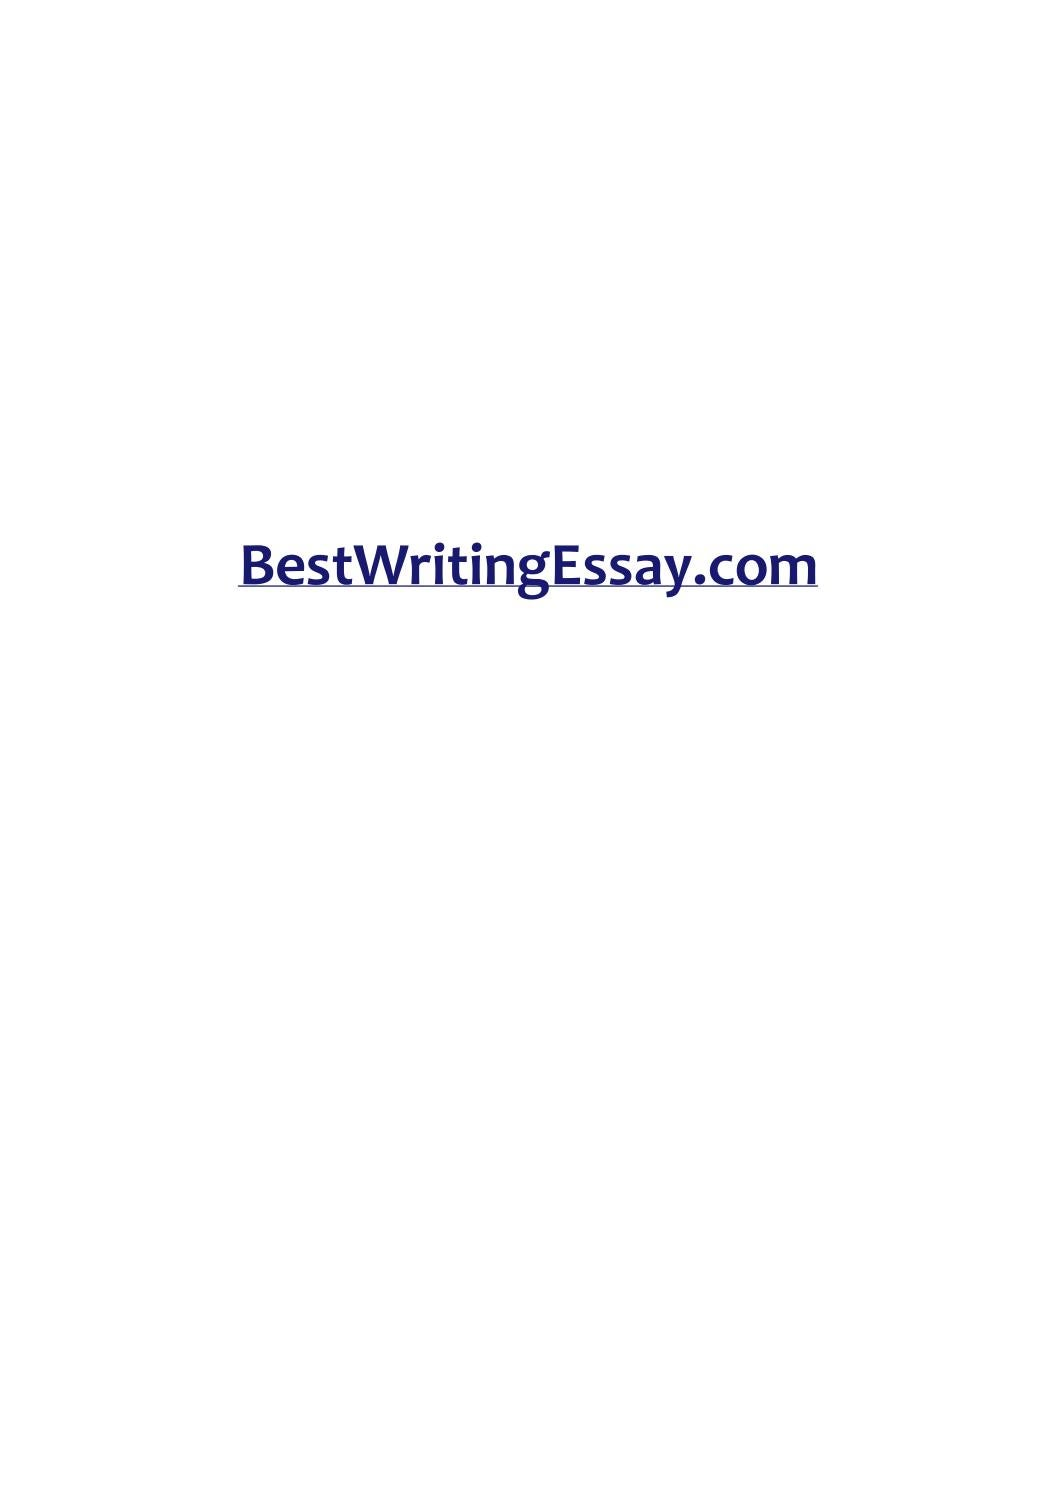 Bullying Essay Thesis  Write My Essay Paper also Health And Fitness Essays College Application Essay Checker By Elenaduke  Issuu Thesis Statement Analytical Essay